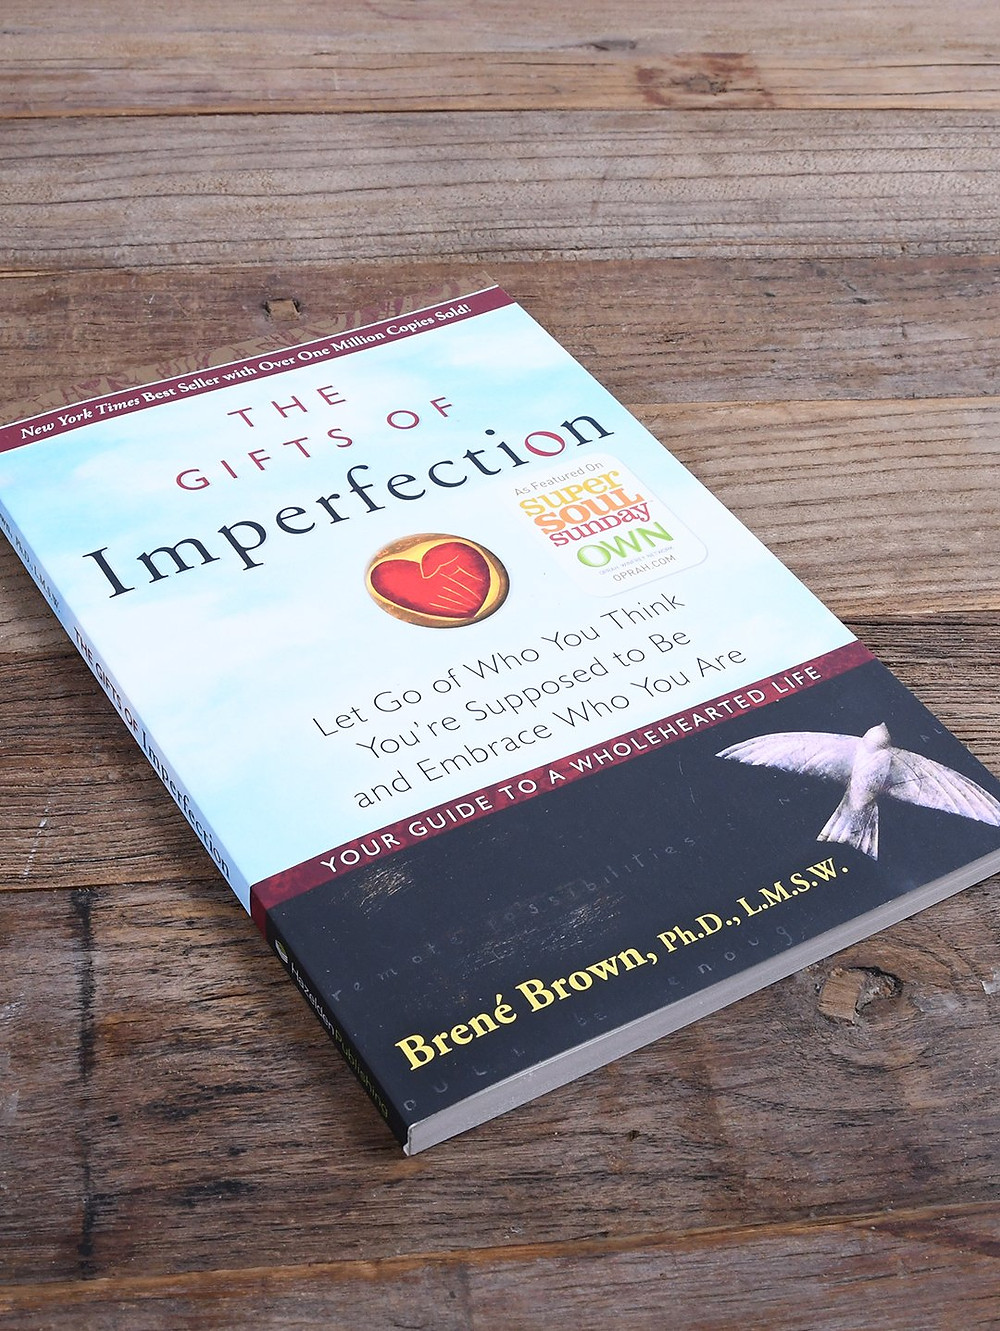 Book 'The Gifts of Imperfection' by Brene Brown